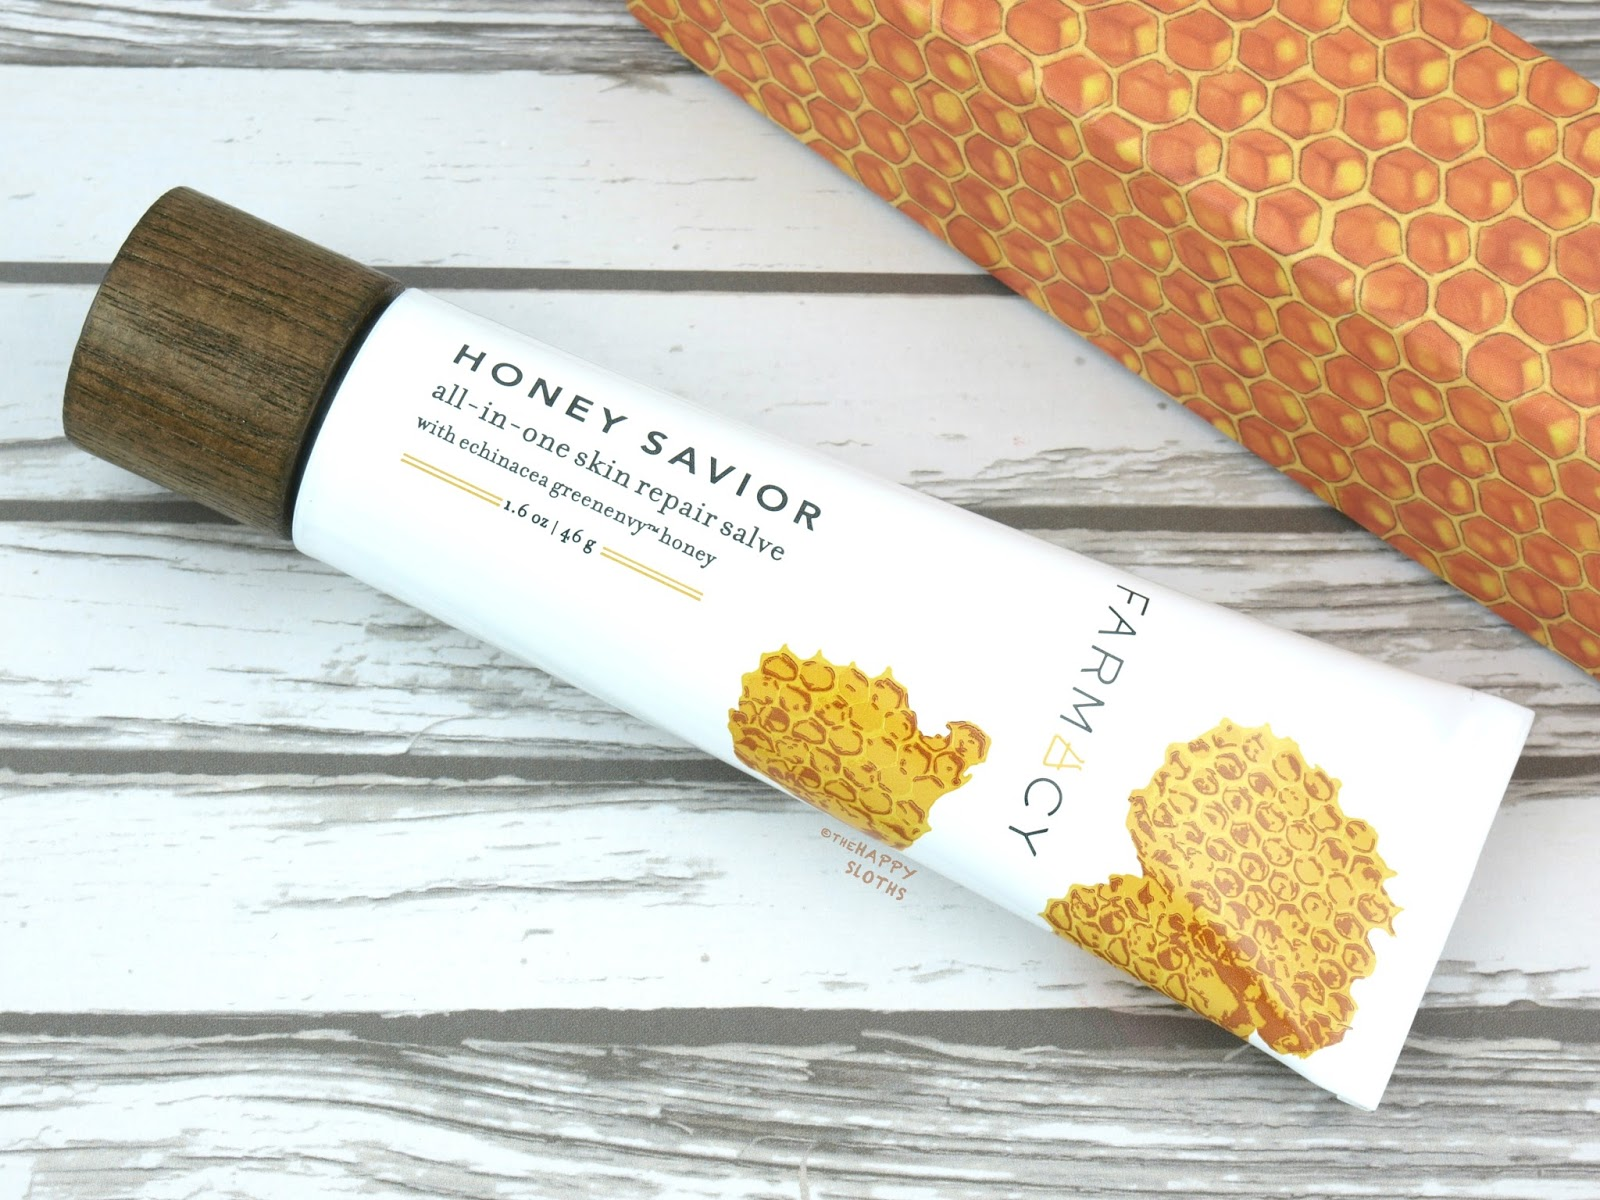 Farmacy Honey Savior All-In-One Skin Repair Salve: Review